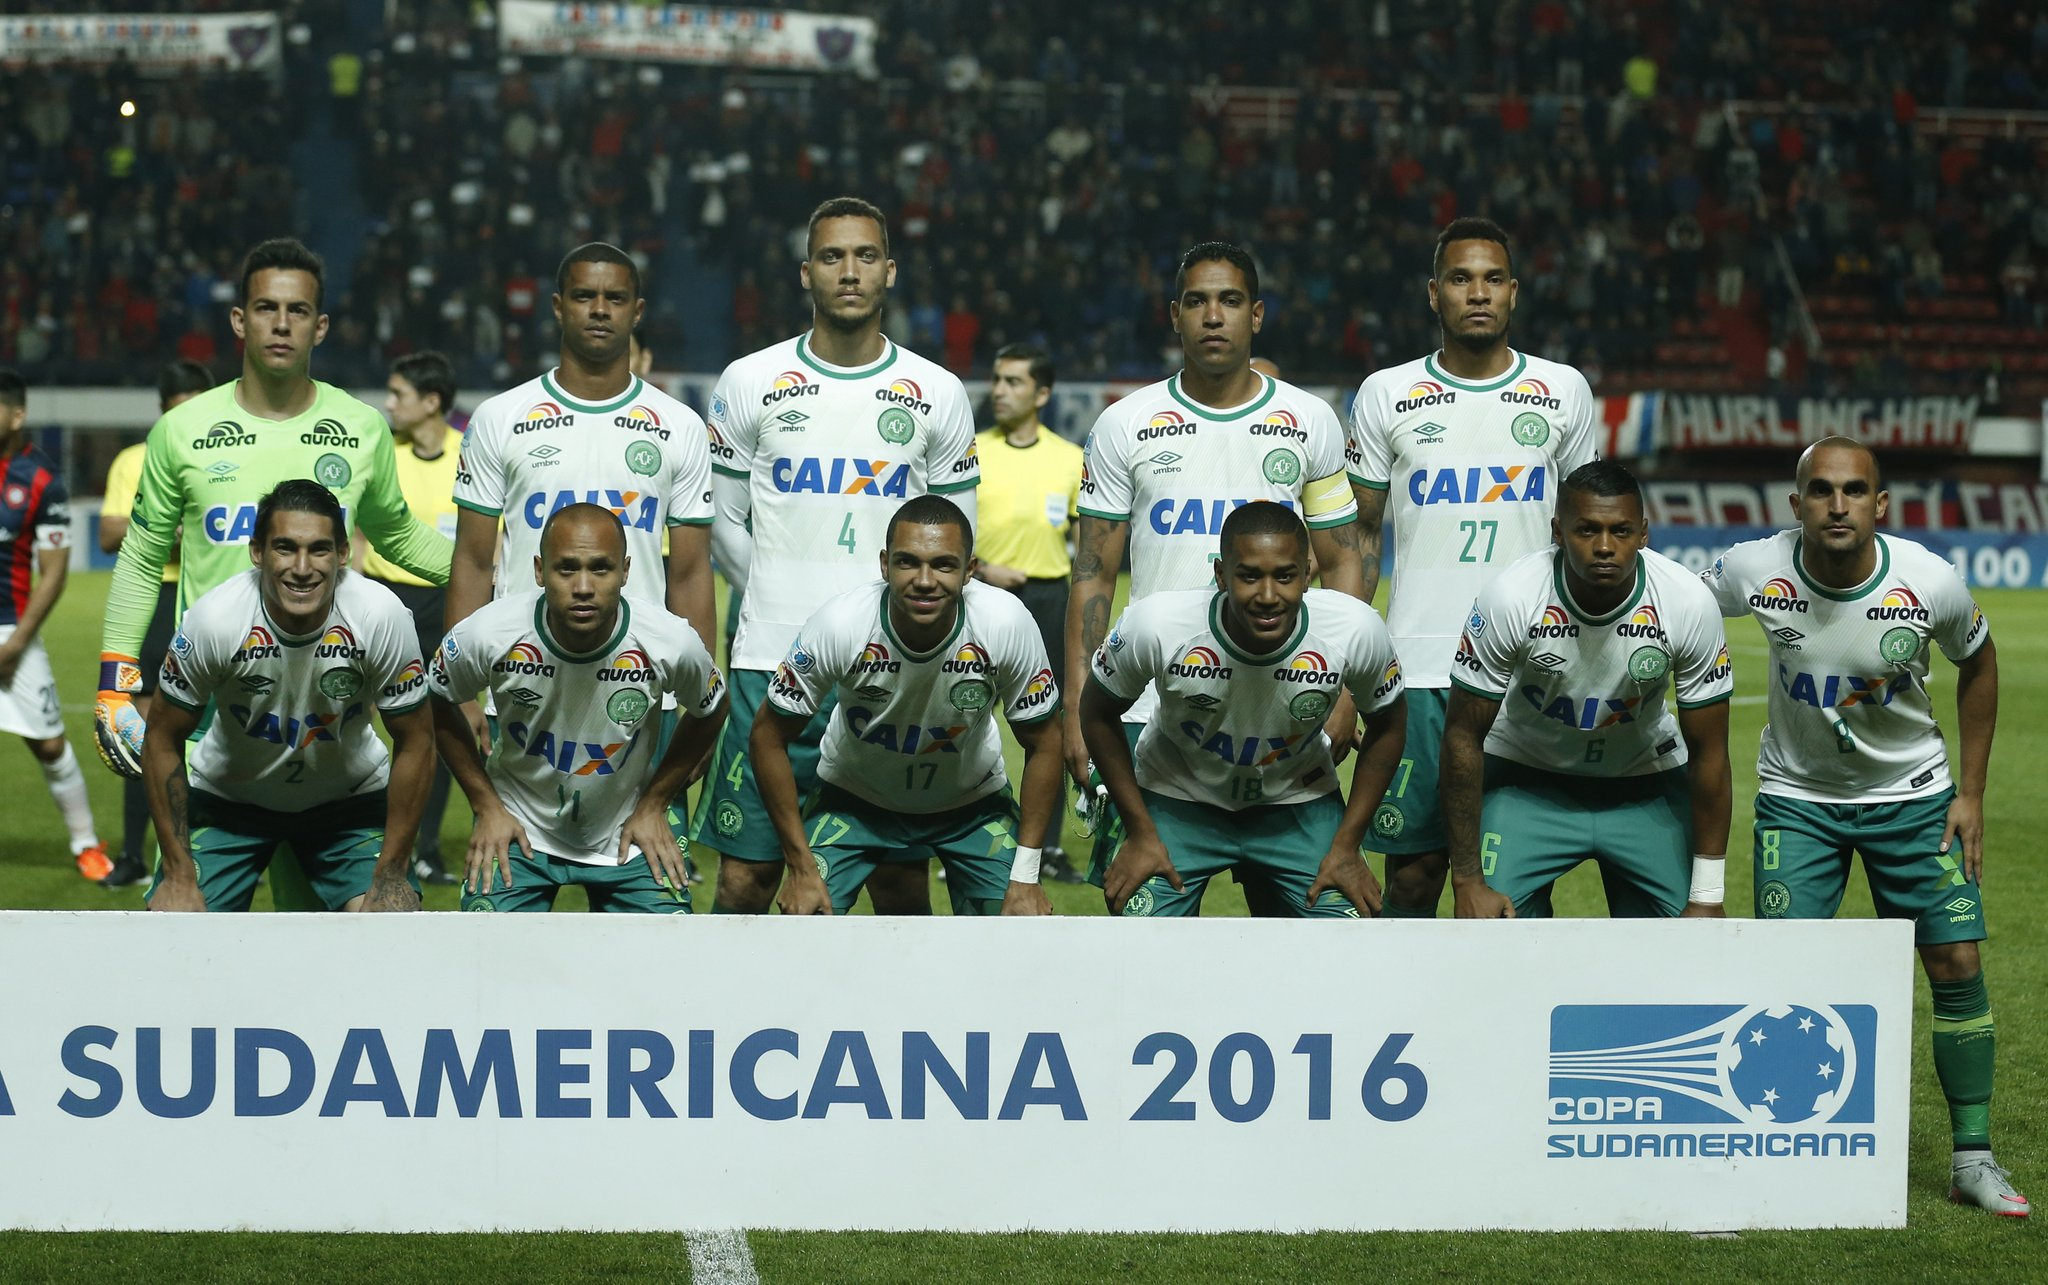 Chapecoense Declared Copa Sudamericana Champions After Plane Crash